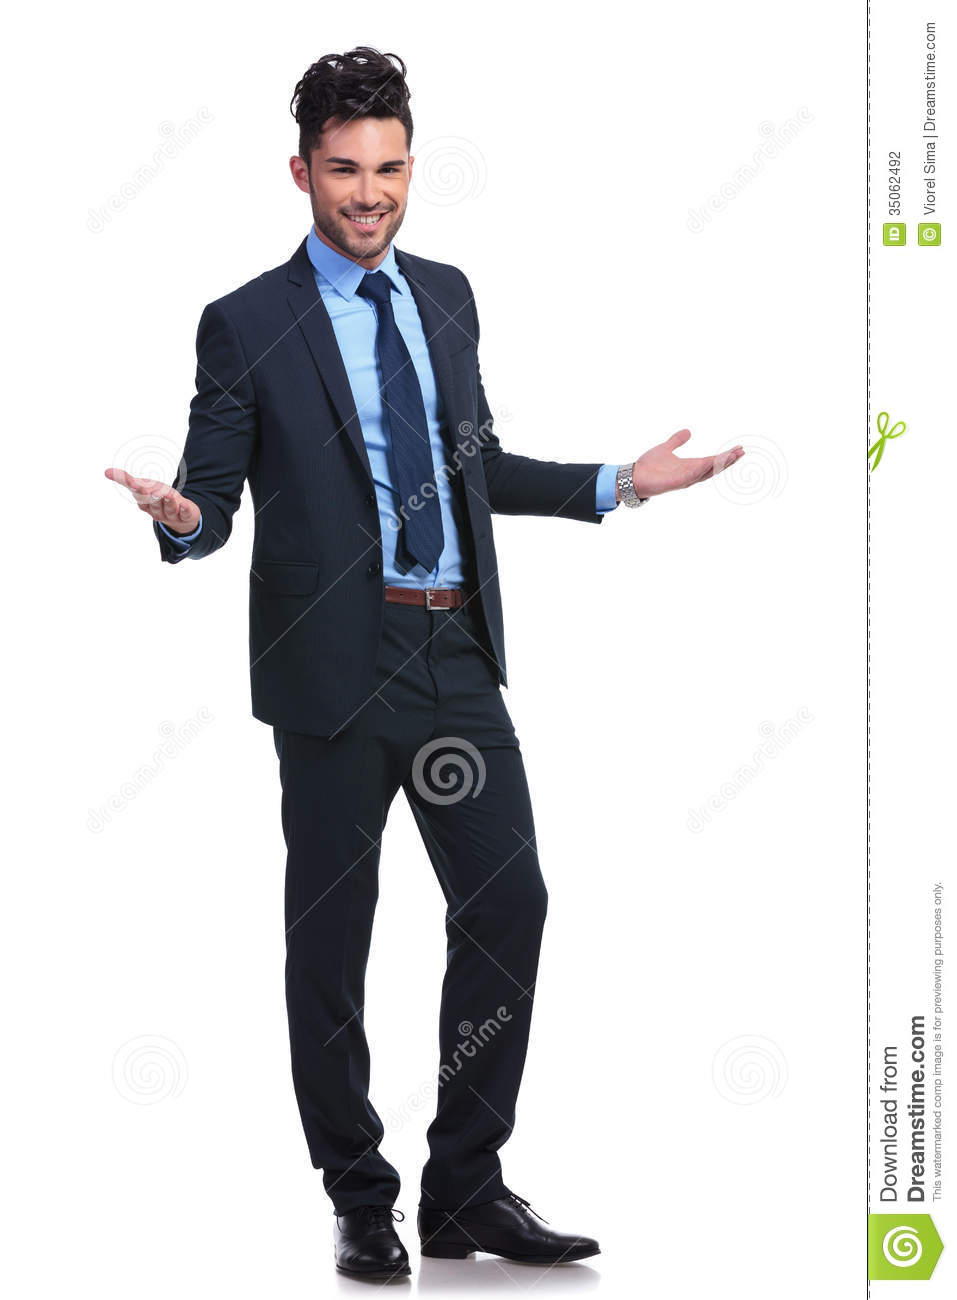 full-body-picture-young-business-man-welcoming-you-white-background-35062492.jpg